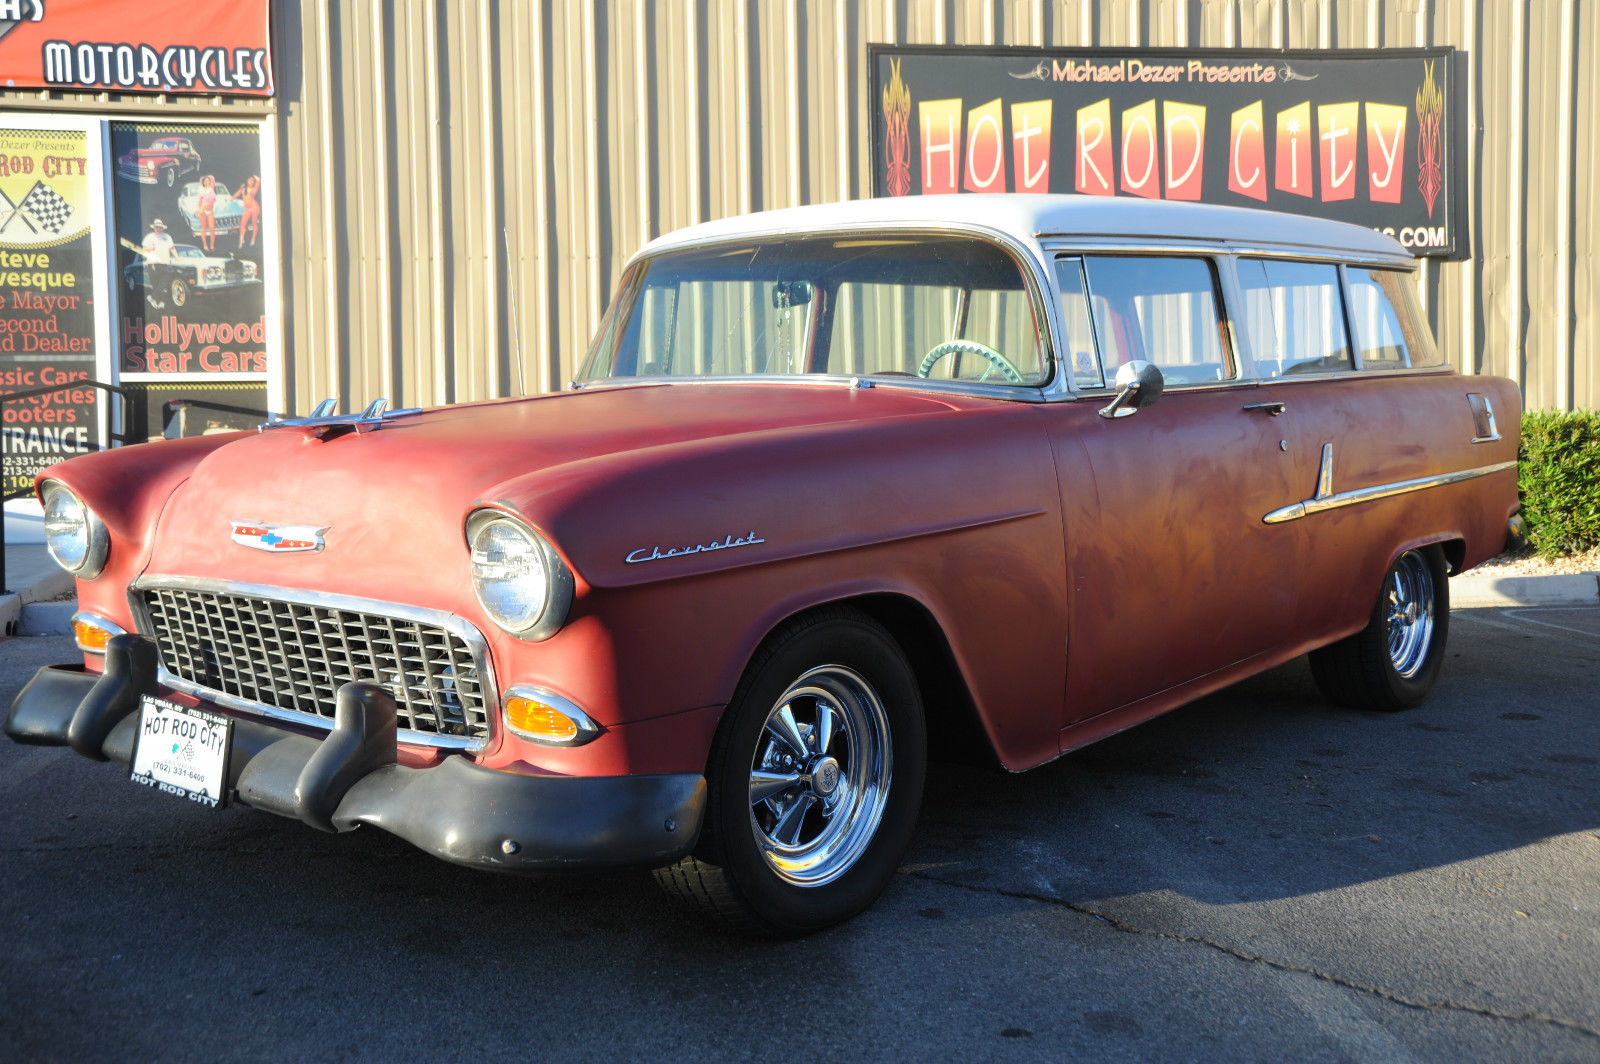 1955 chevrolet 2 door wagon project cars for sale for 1955 chevy 2 door wagon for sale